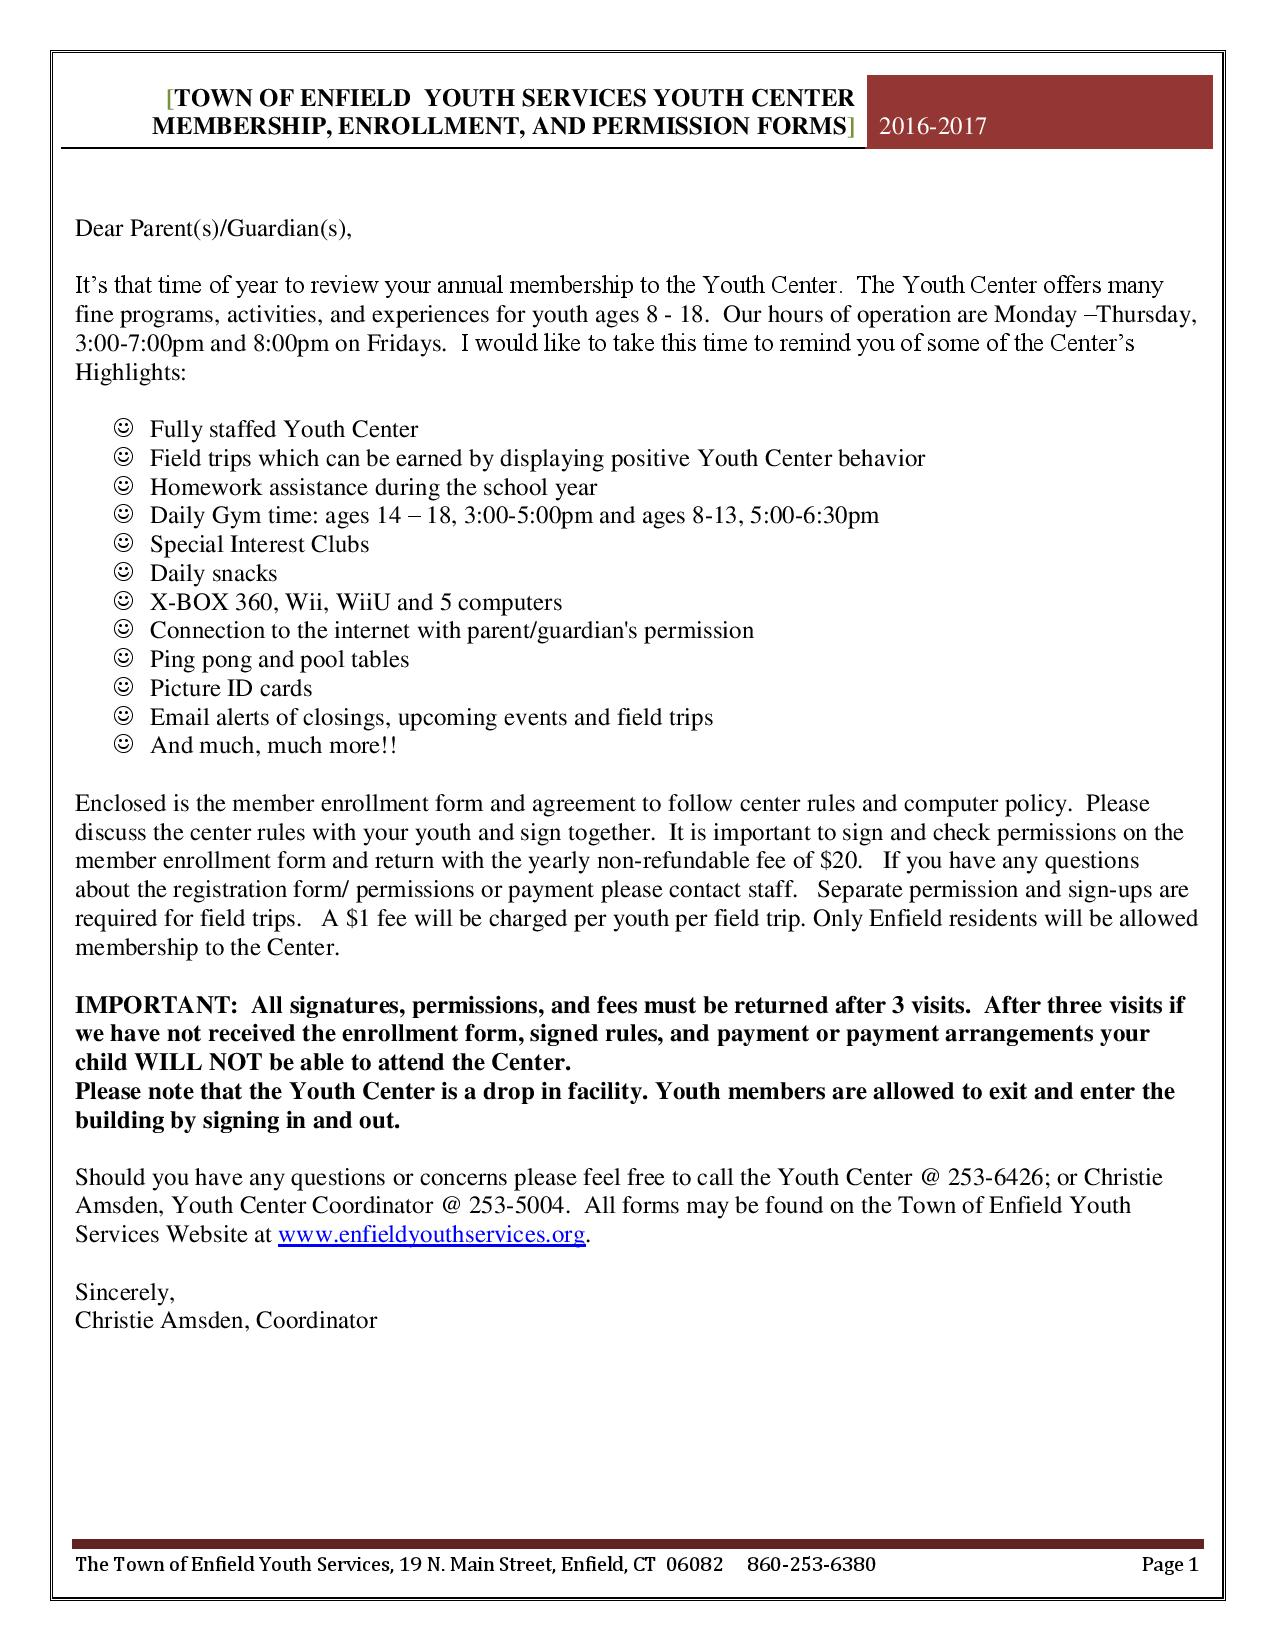 Youth center packet 16-17 (1)-page-001